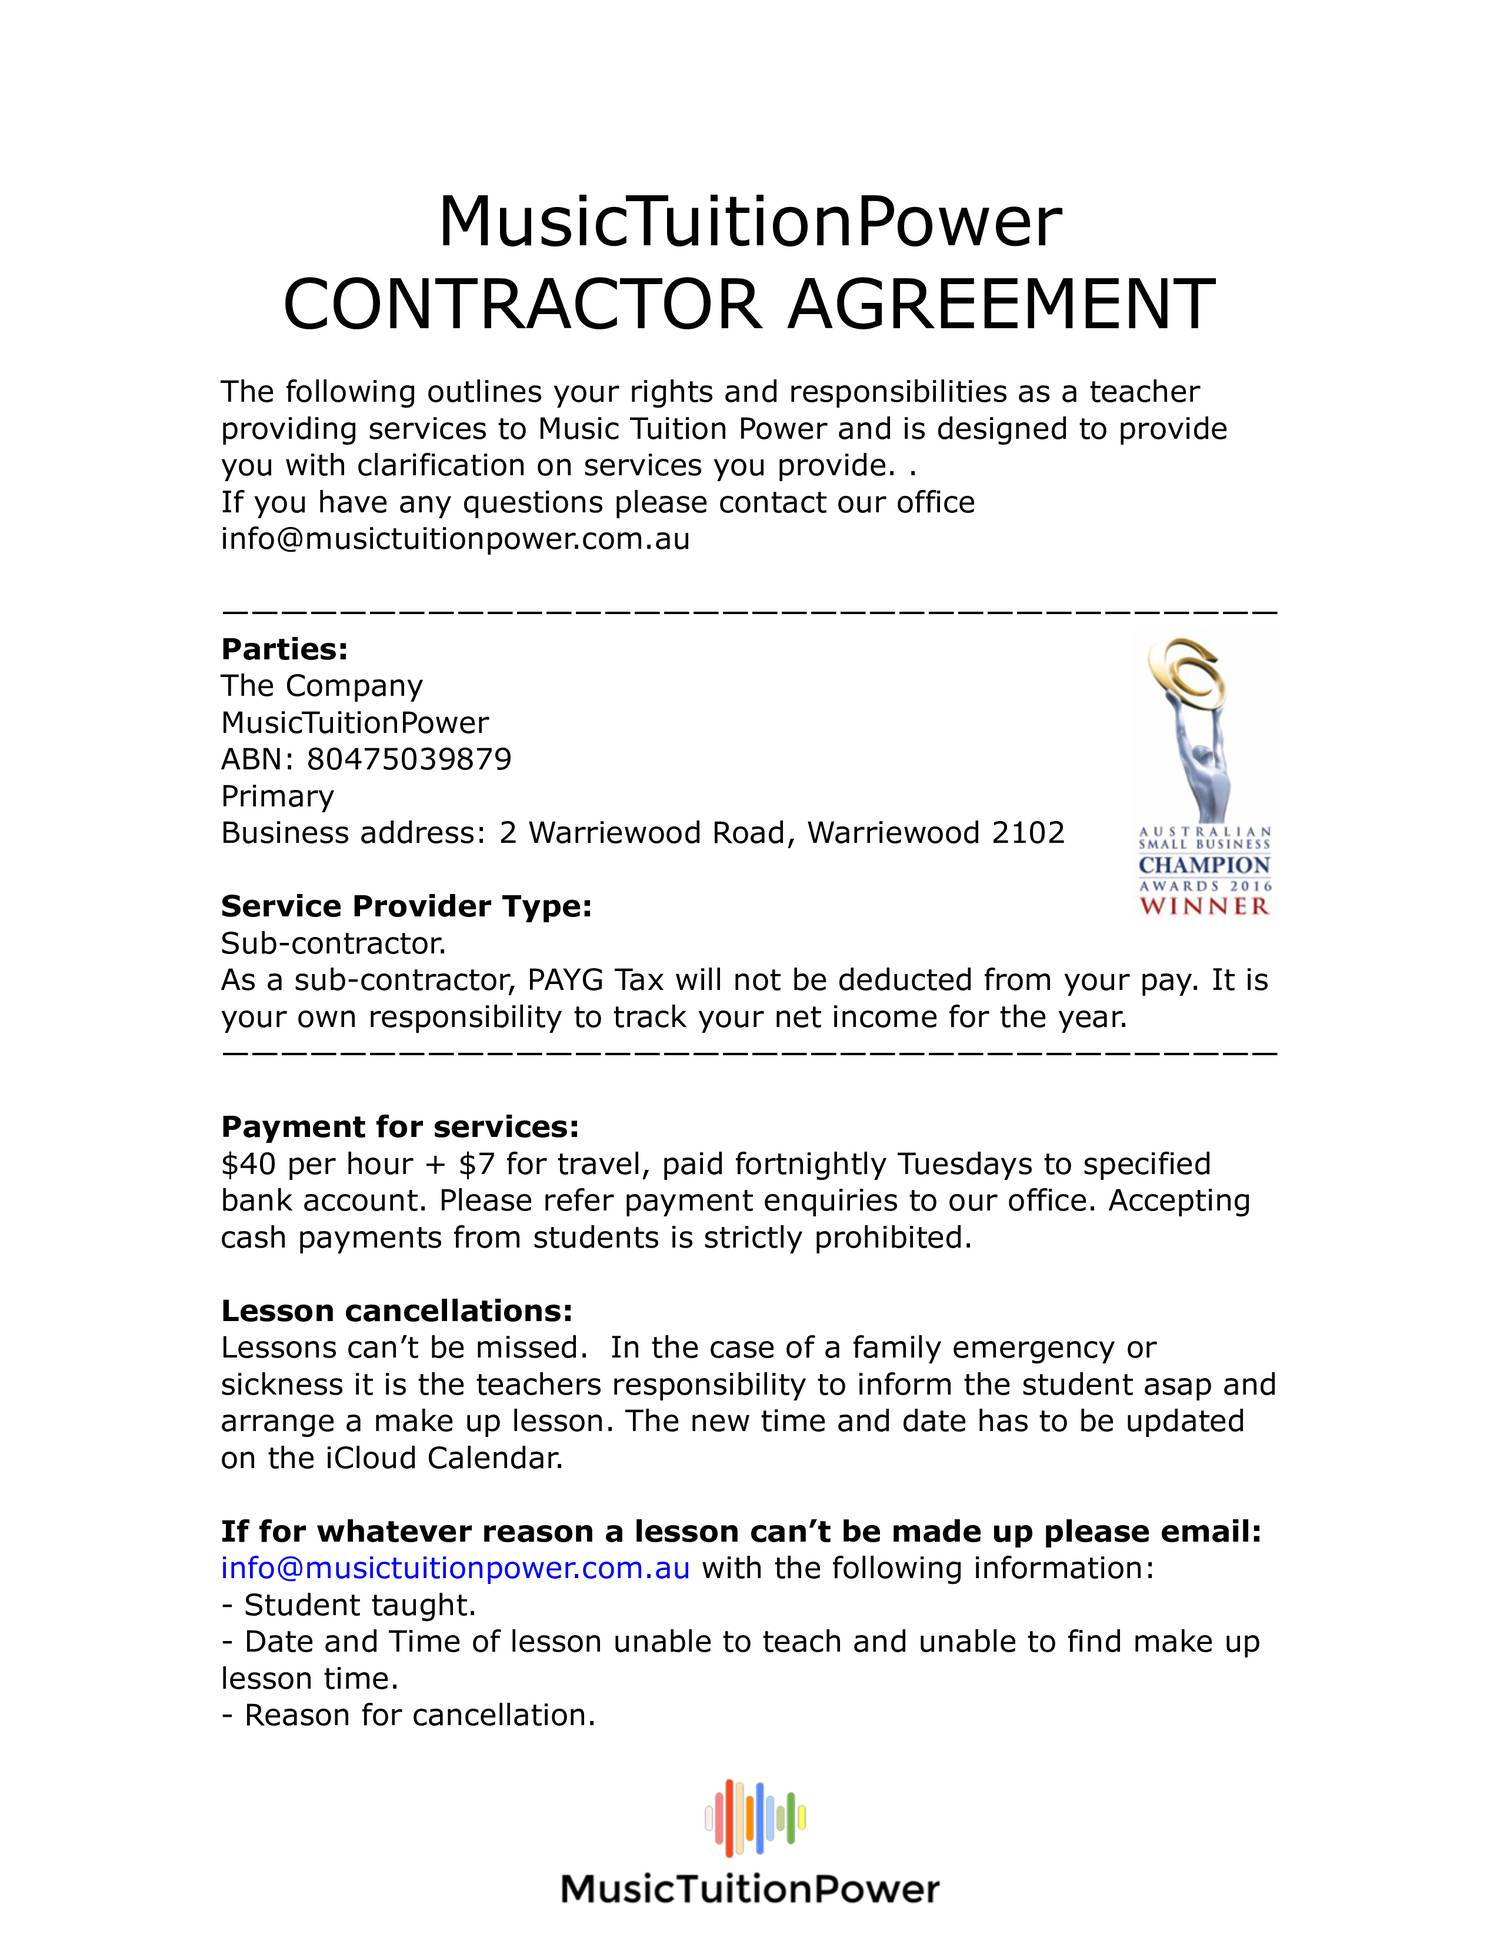 Music Tuition Power Teacher Contract3pdf DocDroid – Teacher Agreement Contract